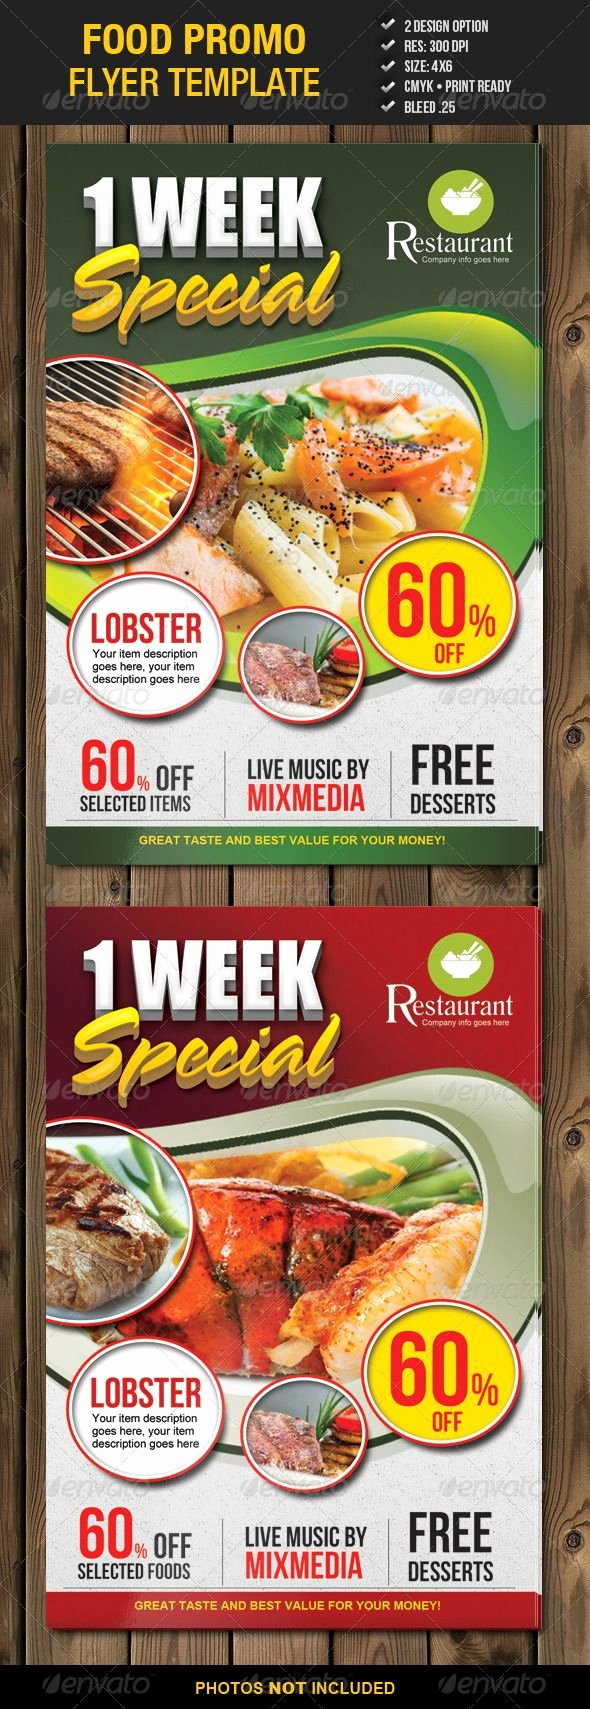 Promotion Flyer Template Free Awesome Food Promo Flyer Template 2